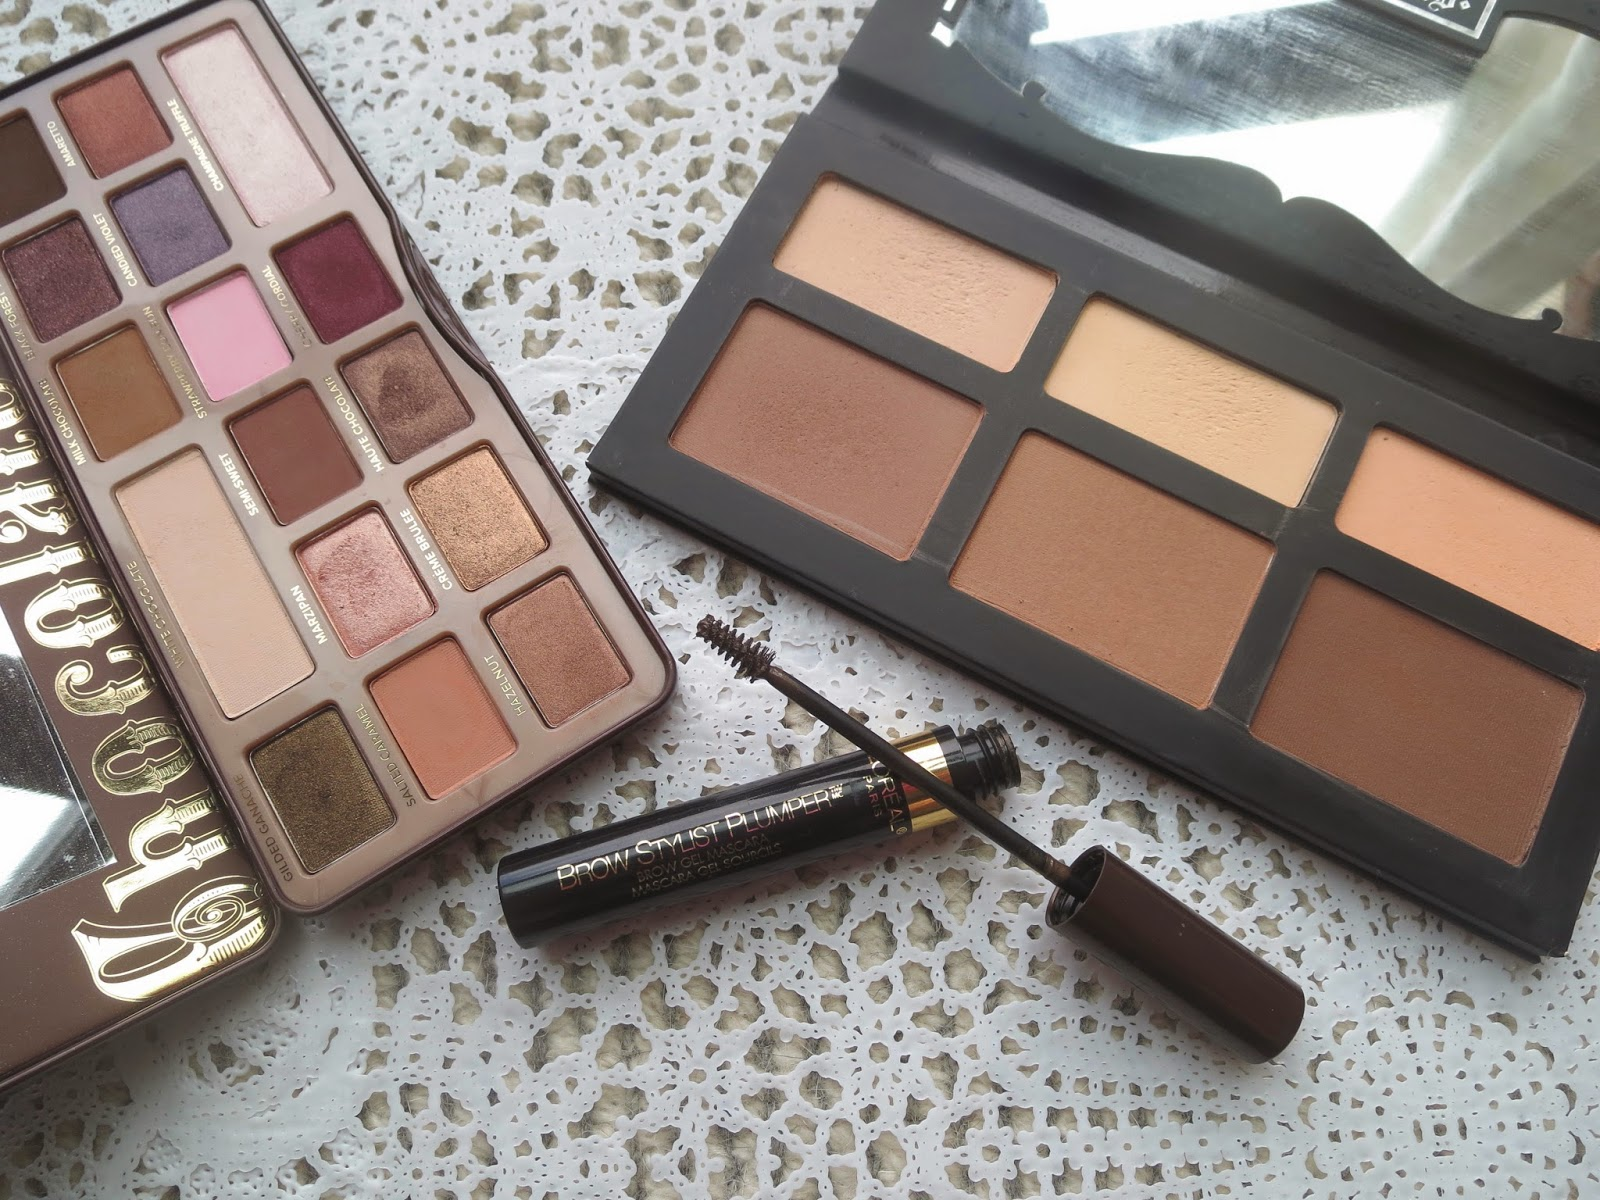 a picture of Too Faced Chocolate Bar, Kat Von D Shade + Light, L'Oreal Brow Stylist Plumper